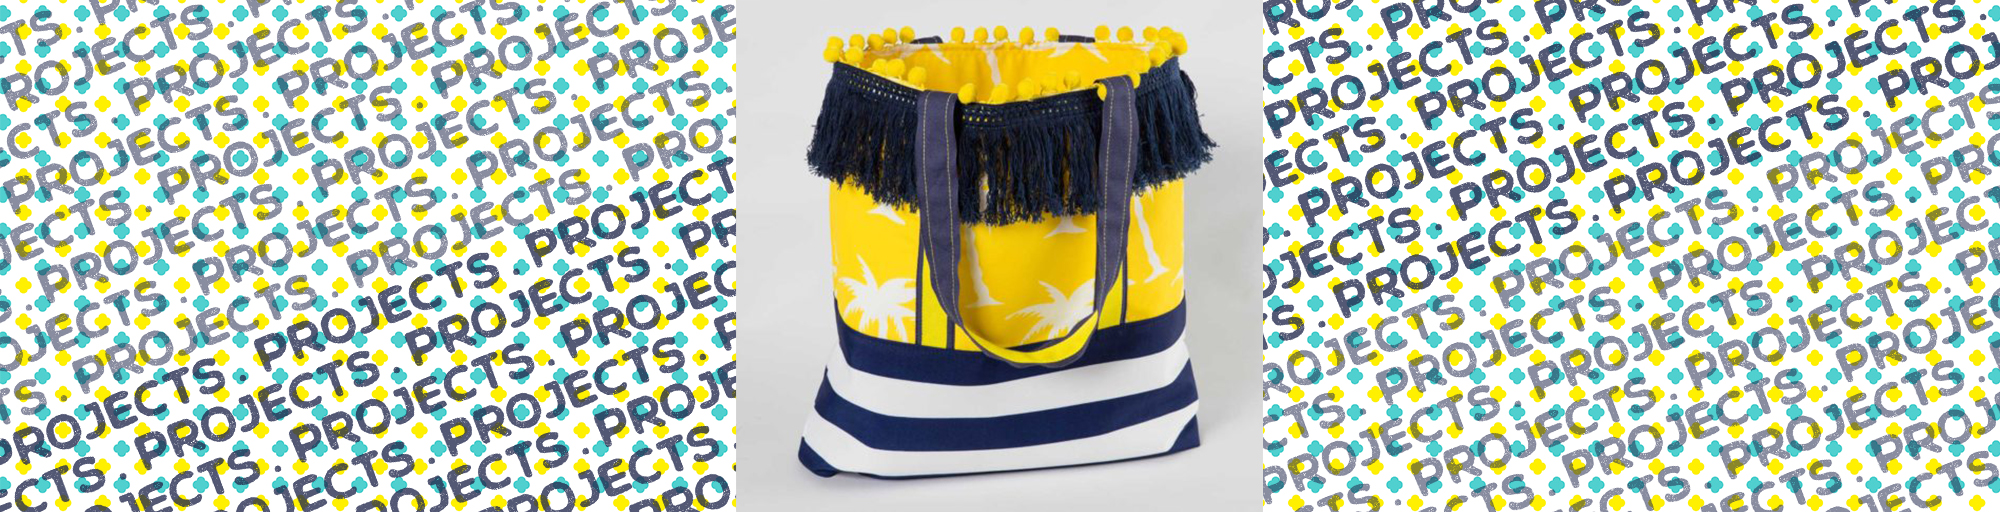 janome sewing project beach tote